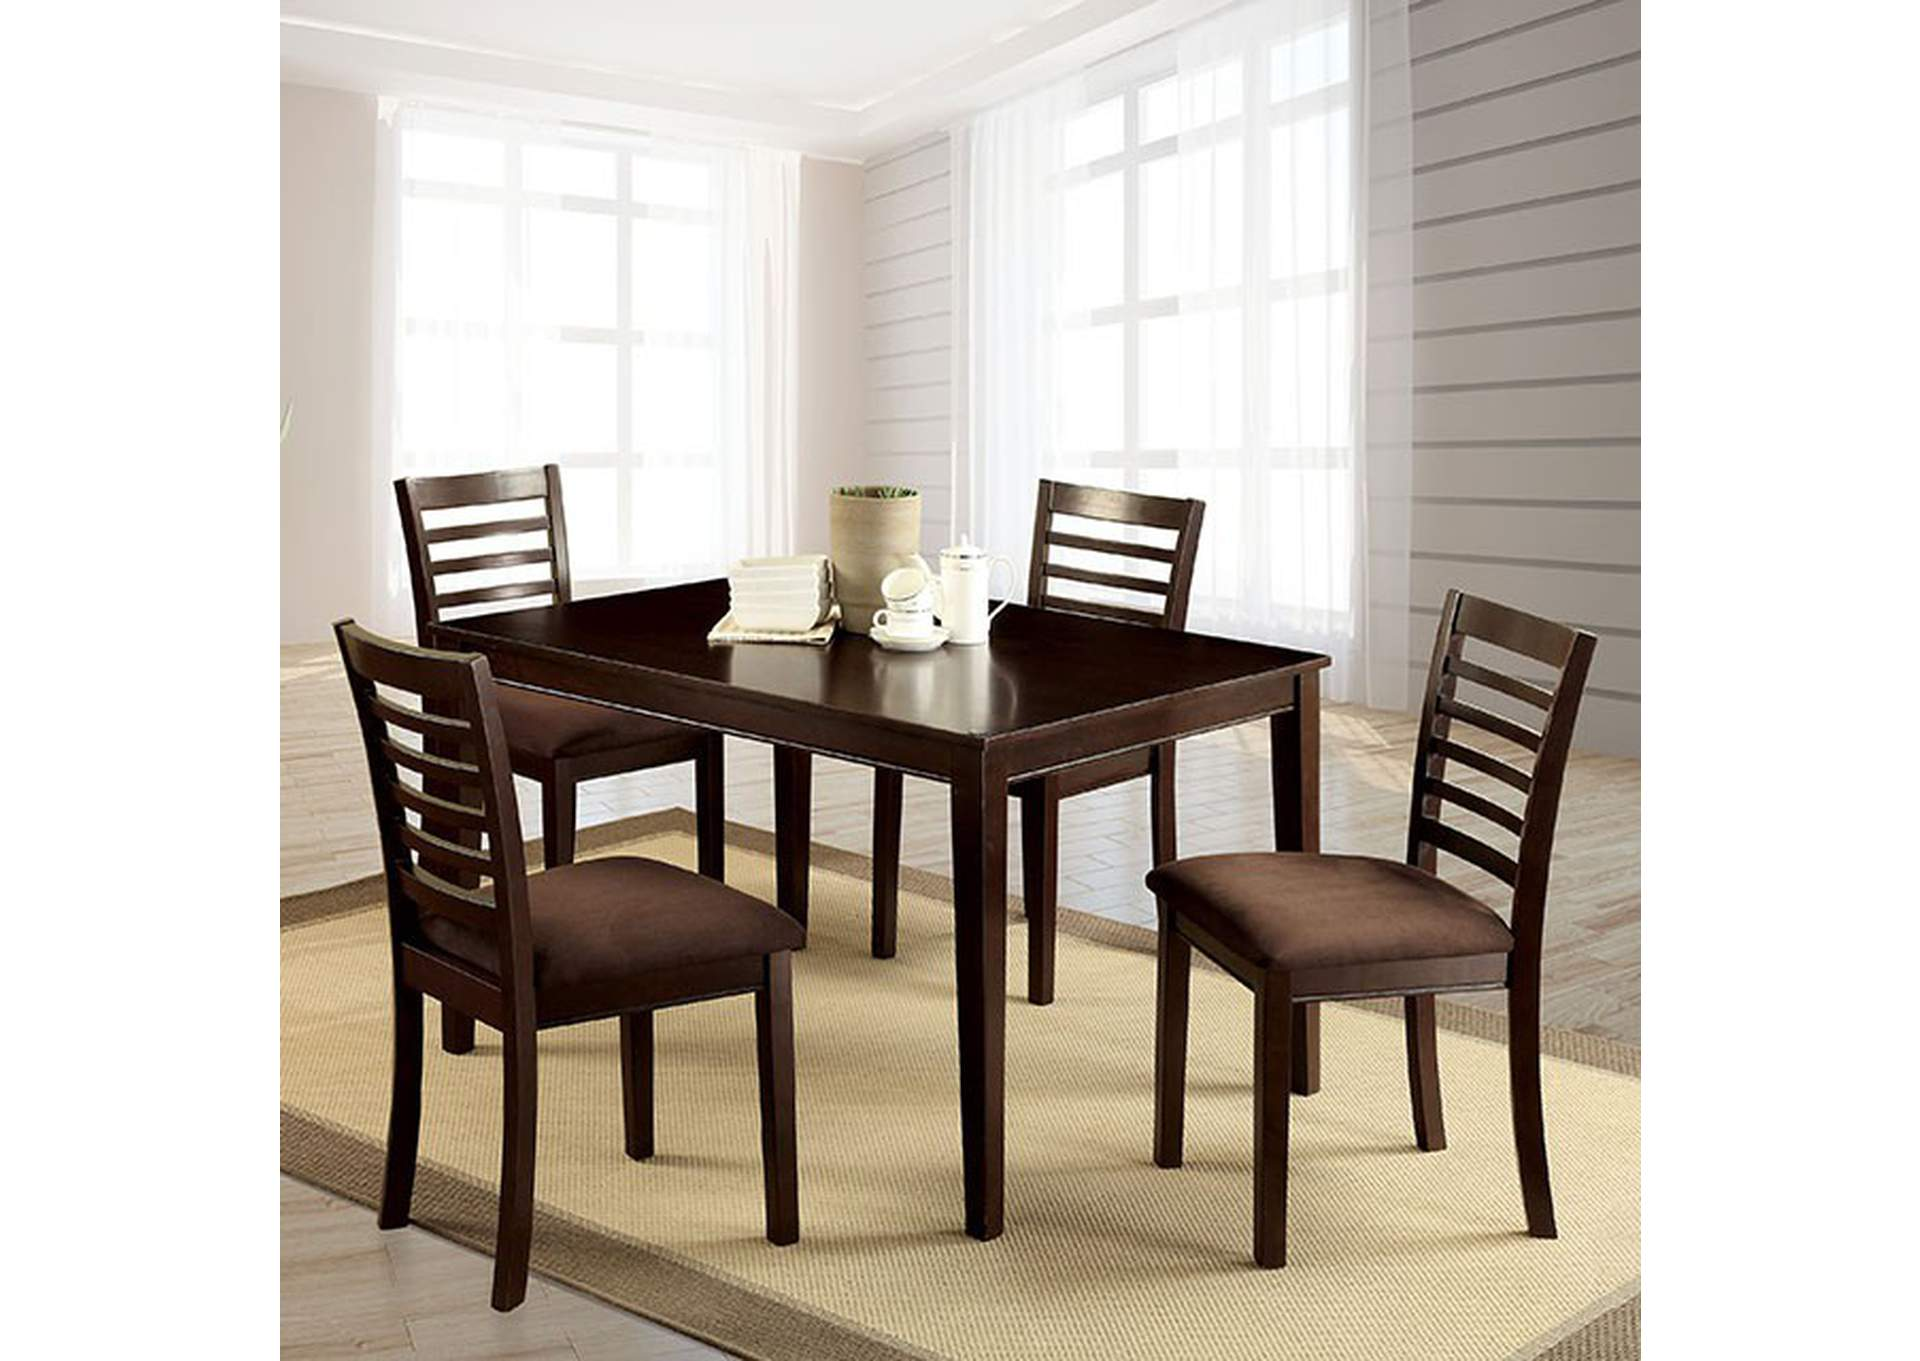 Eaton I Espresso 5 Piece Dining Set,Furniture of America